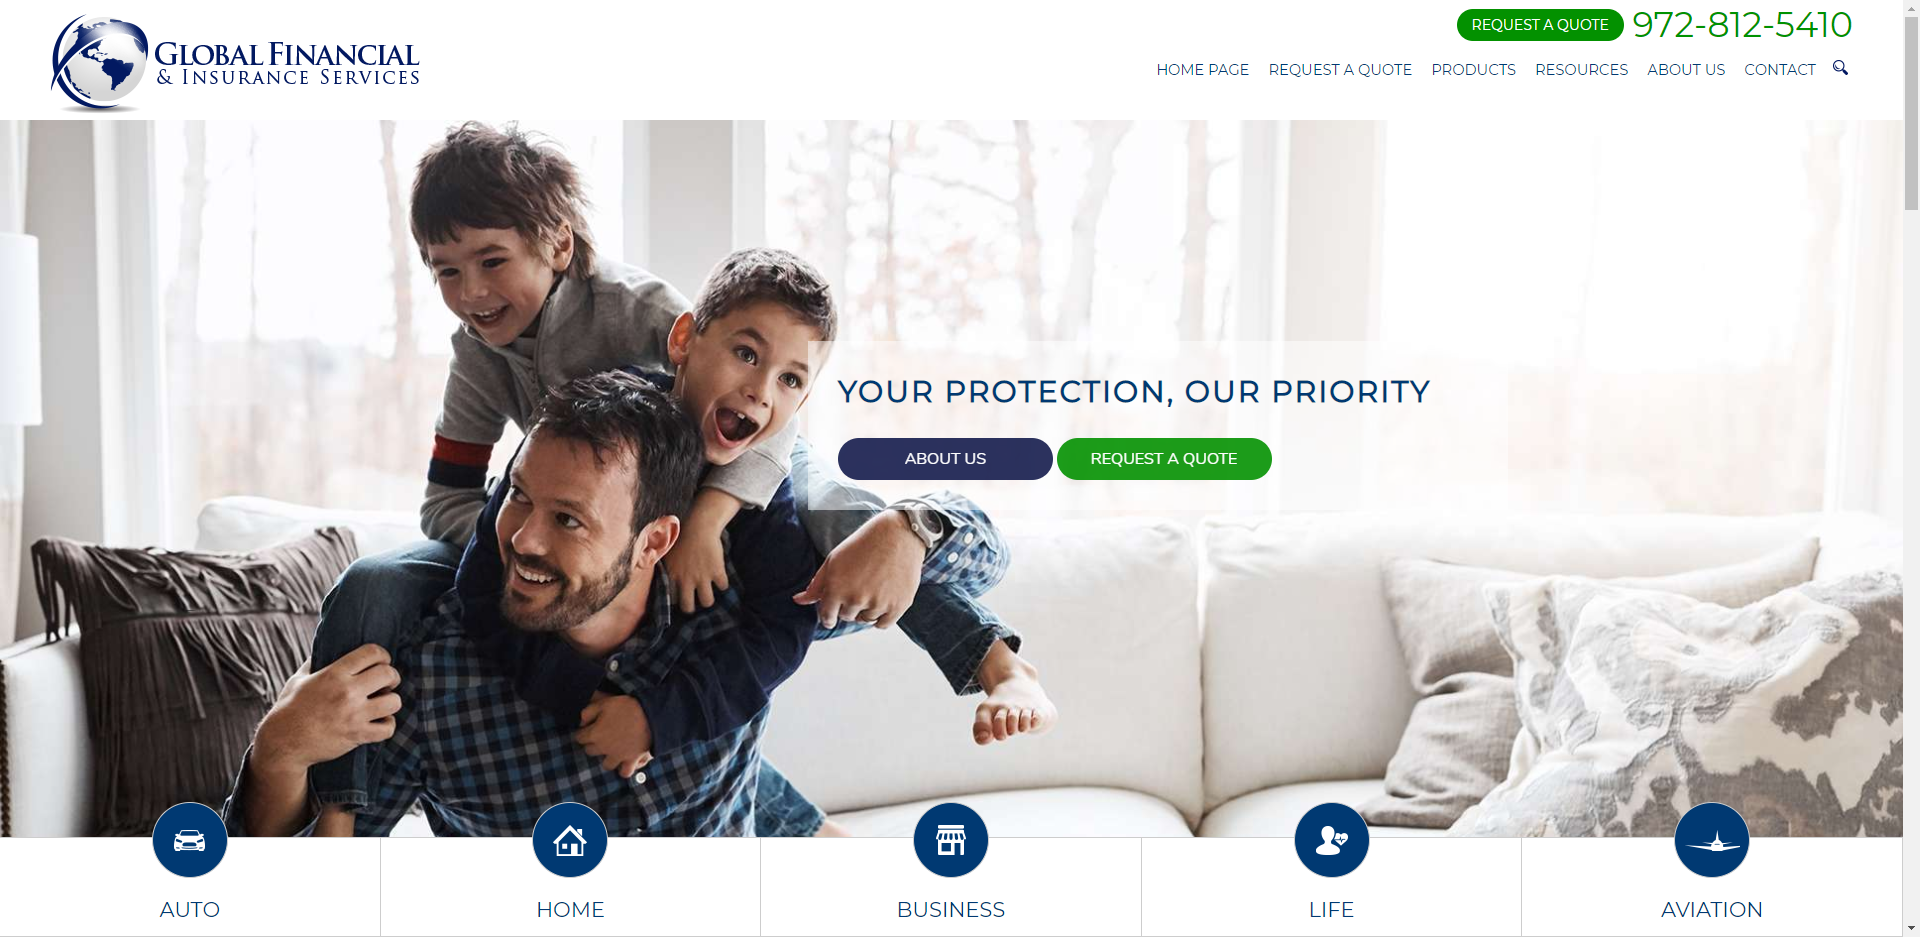 global financial insurance services website